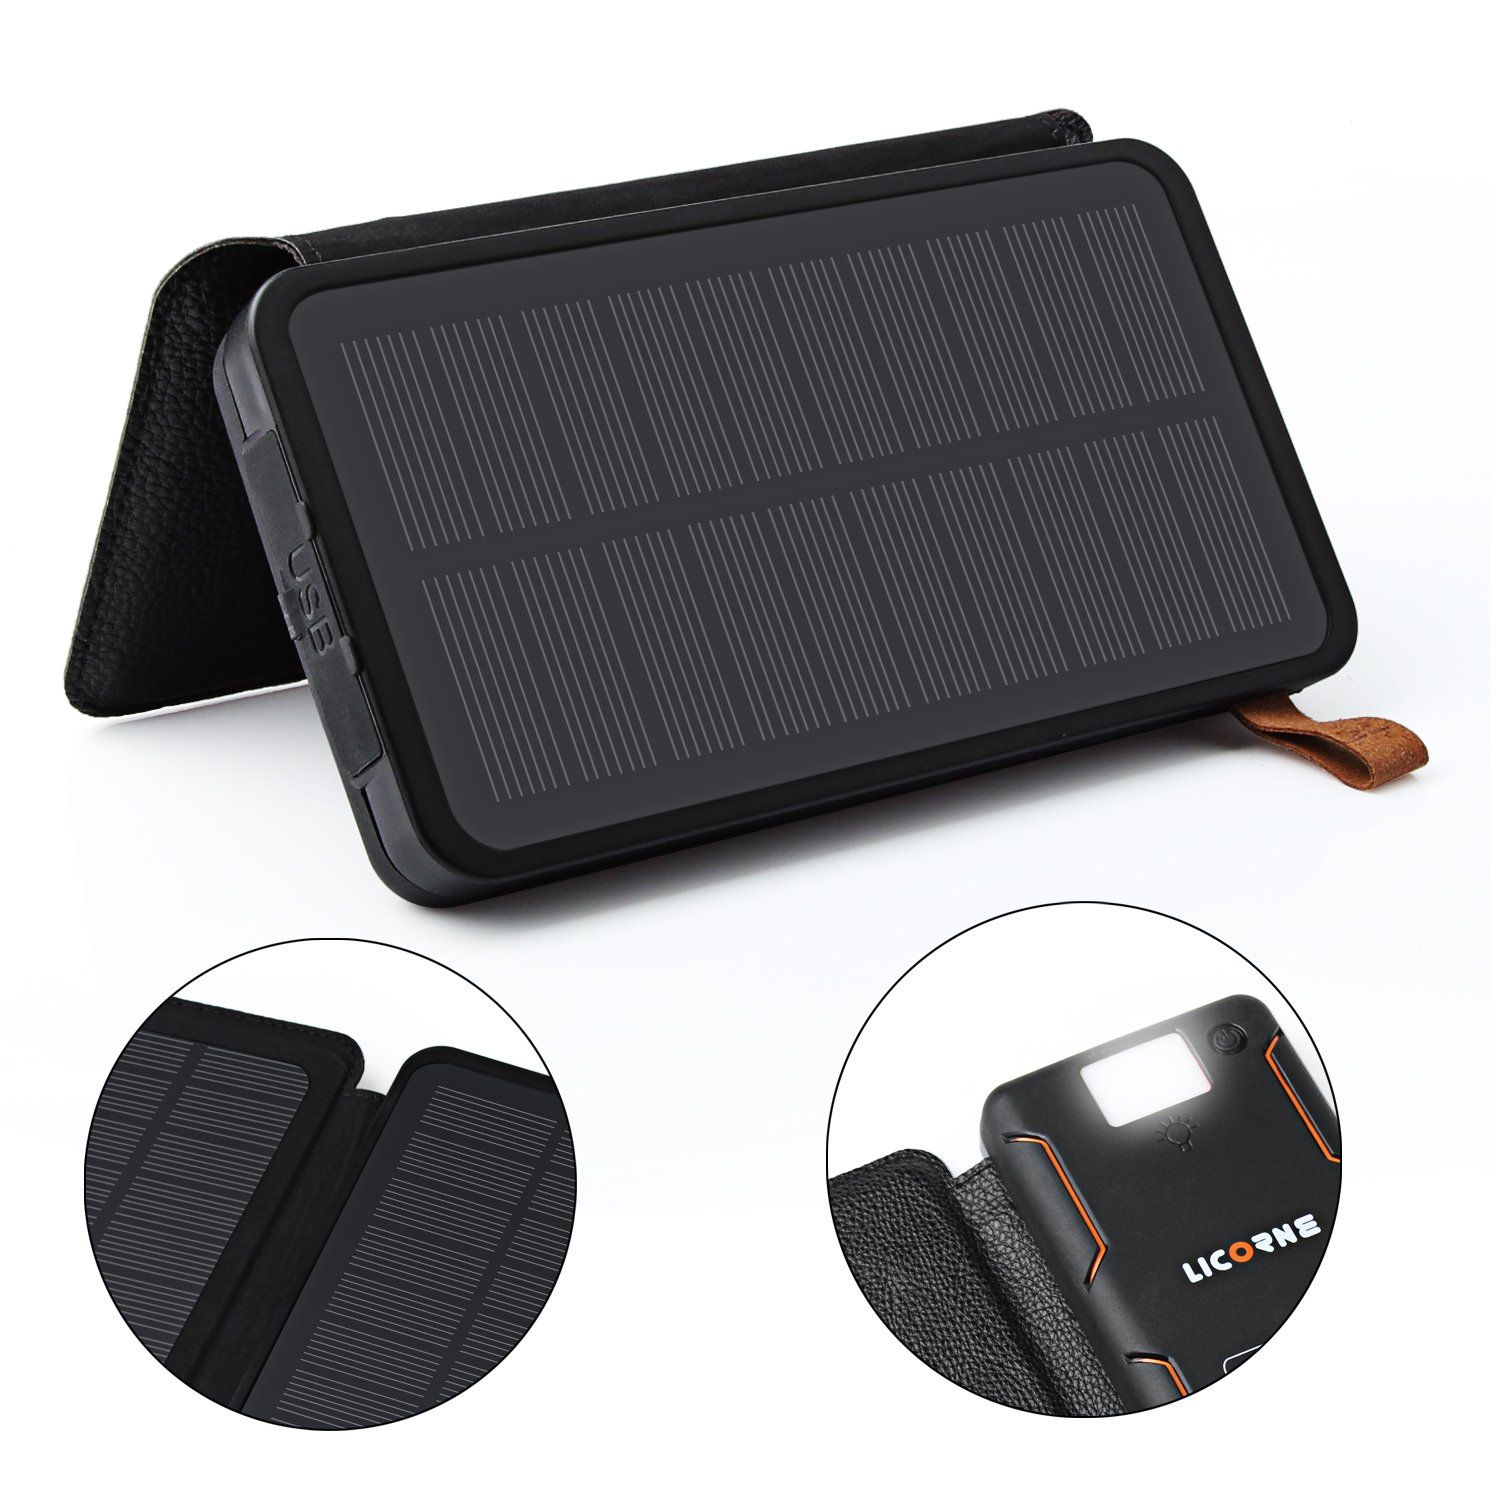 Solar Power Bank,24000mAh Solar Chargers High Capacity Solar Panel Cellphone Chargers Rain-resistant Dirt/Shockproof Backup with LED Flashlight Dual USB Port Solar Battery Charger for Most USB Devices